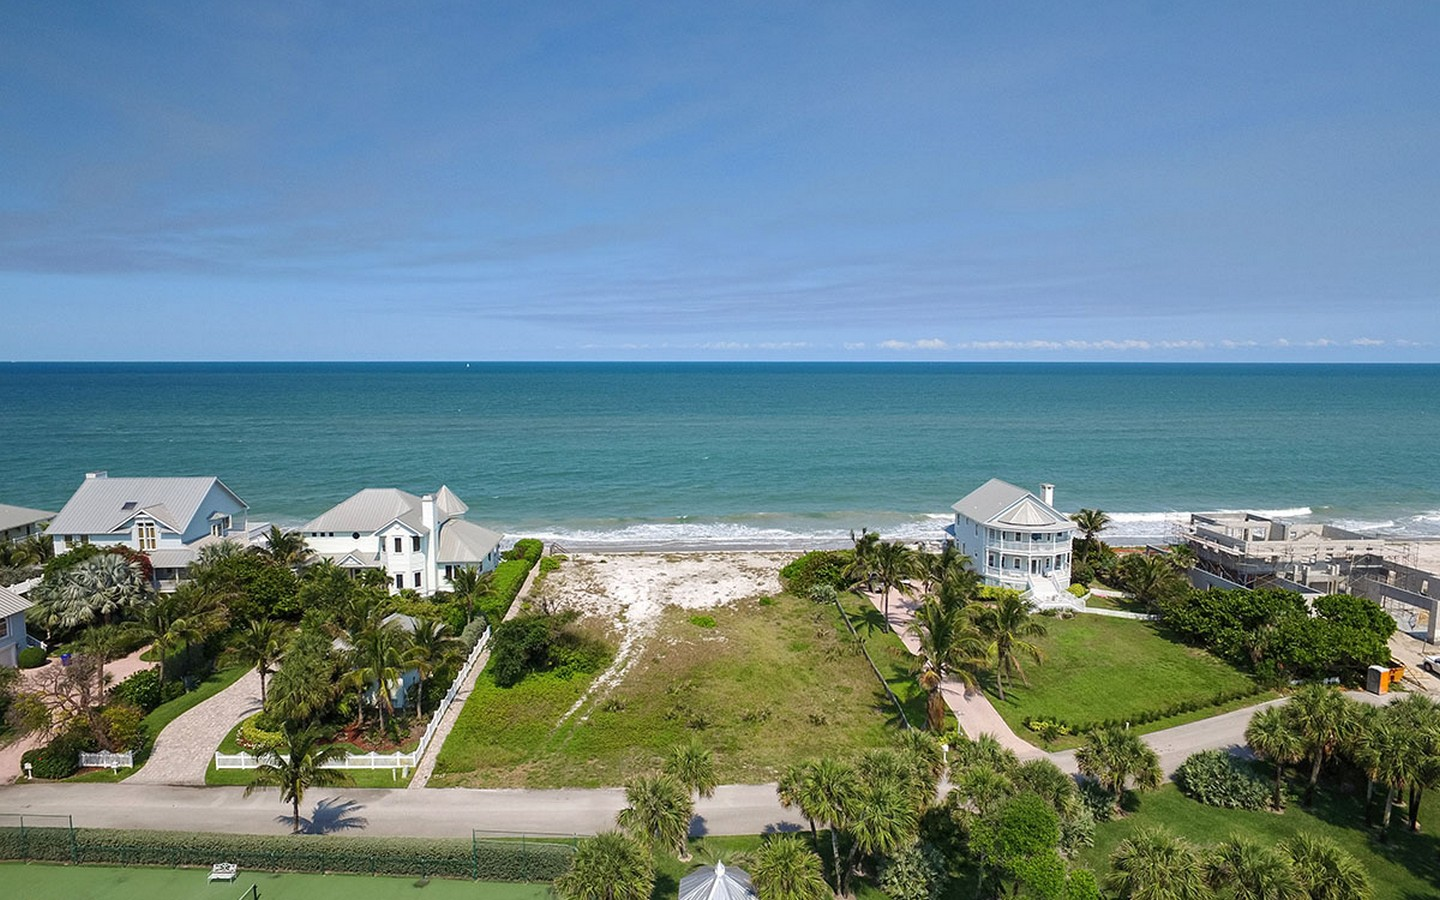 Terreno por un Venta en Magnificent Oceanfront Homesite in Sanderling 2240 Sanderling Lane Vero Beach, Florida, 32963 Estados Unidos